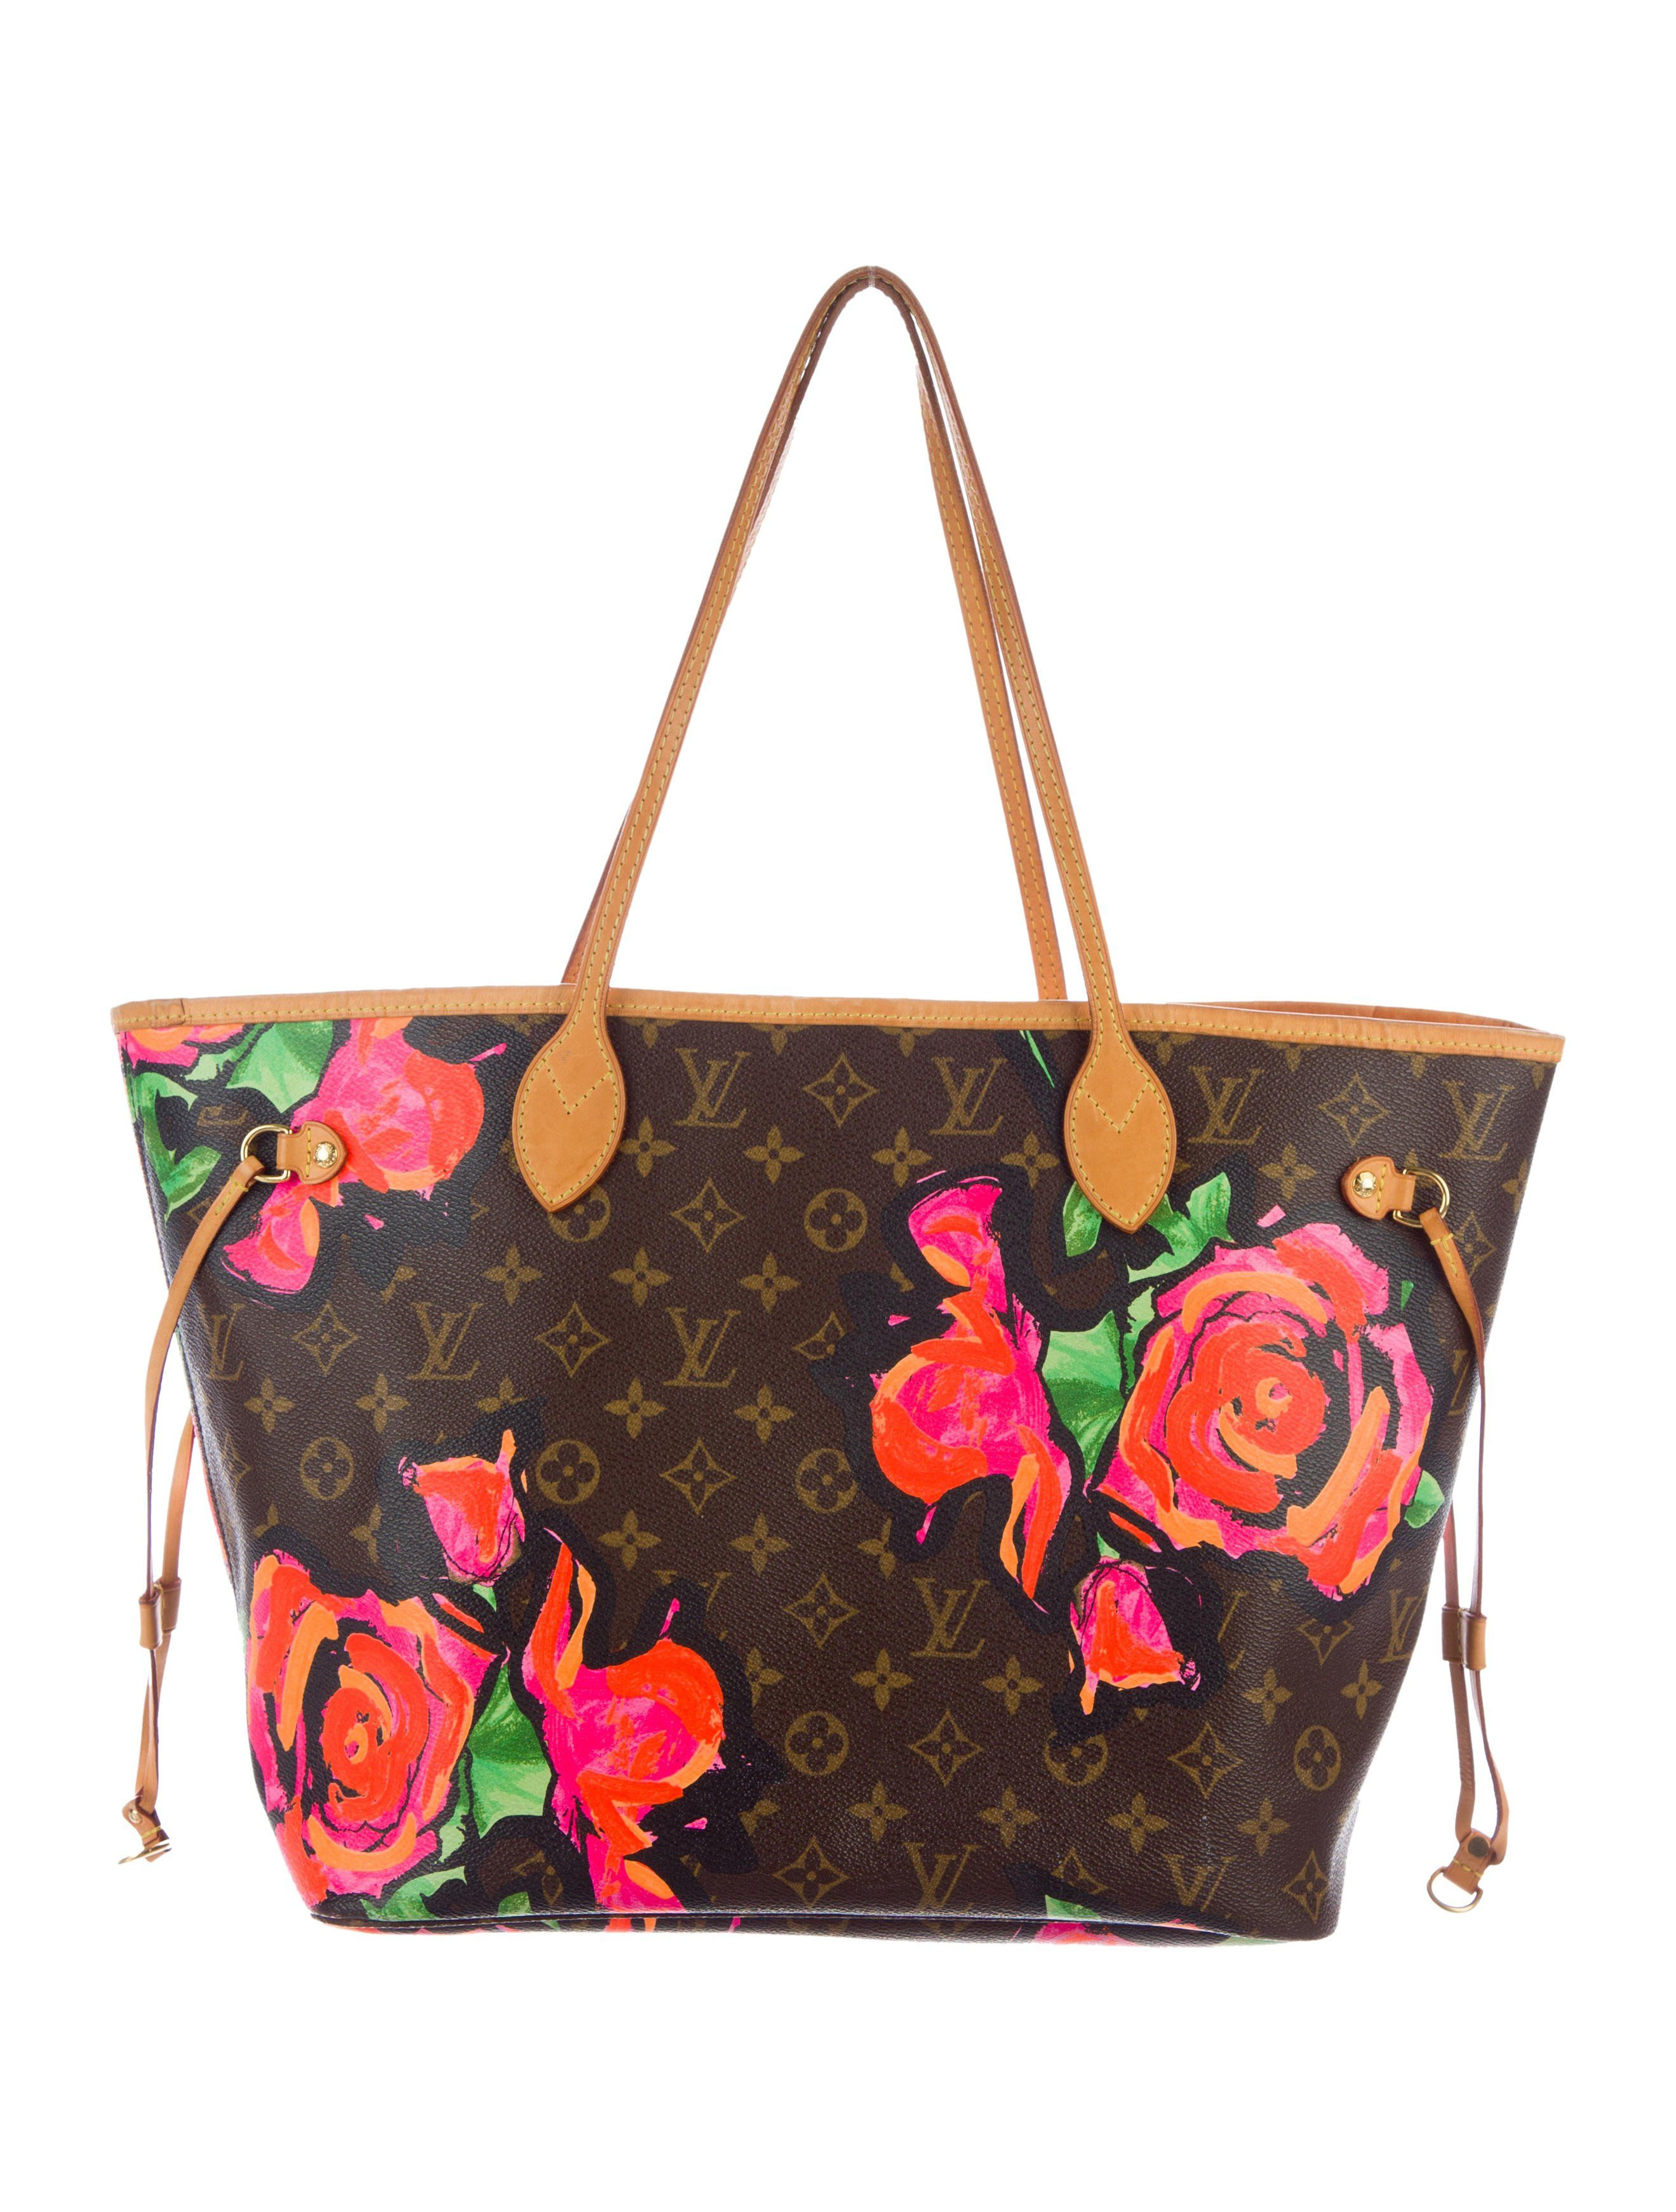 b7692740fce0 From the Stephen Sprouse Collection. Brown and tan monogram coated canvas Louis  Vuitton Roses Neverfull MM with brass hardware